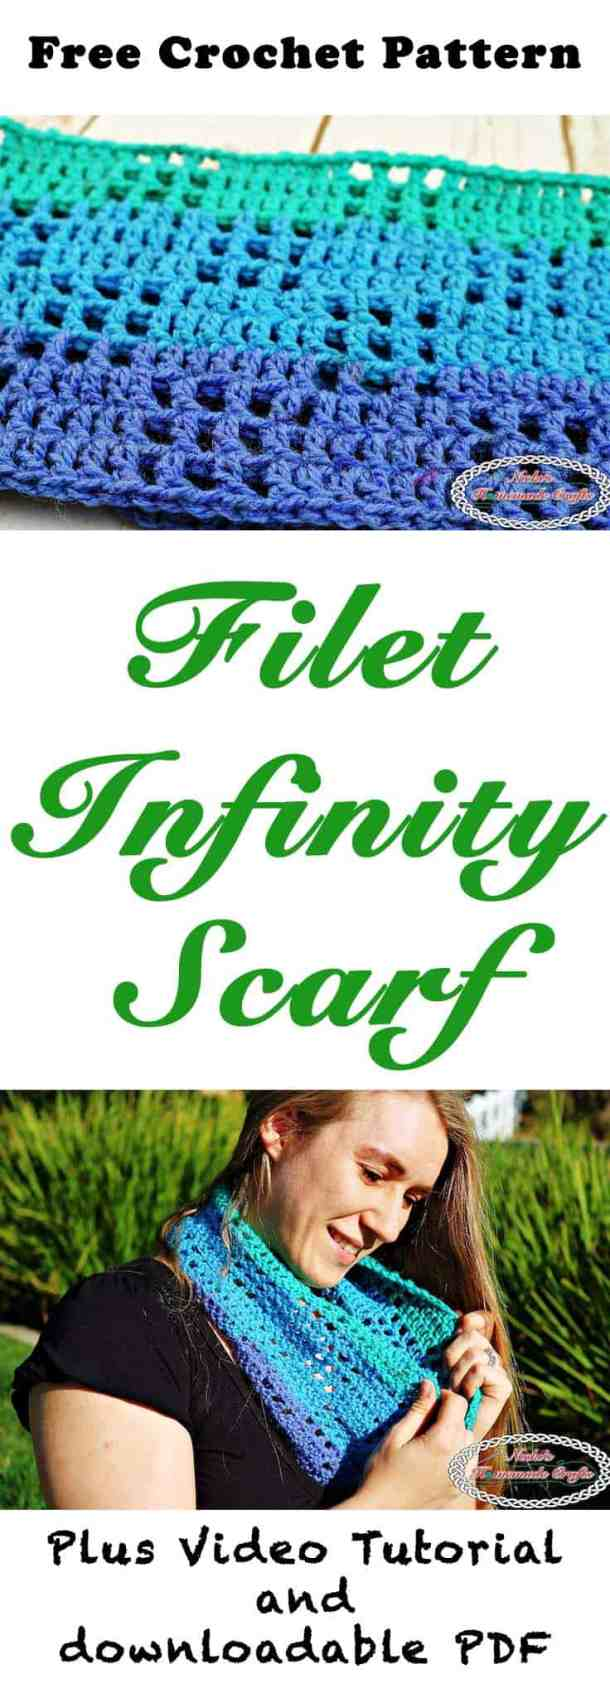 Filet Infinity Scarf Free Crochet Pattern Nickis Homemade Crafts